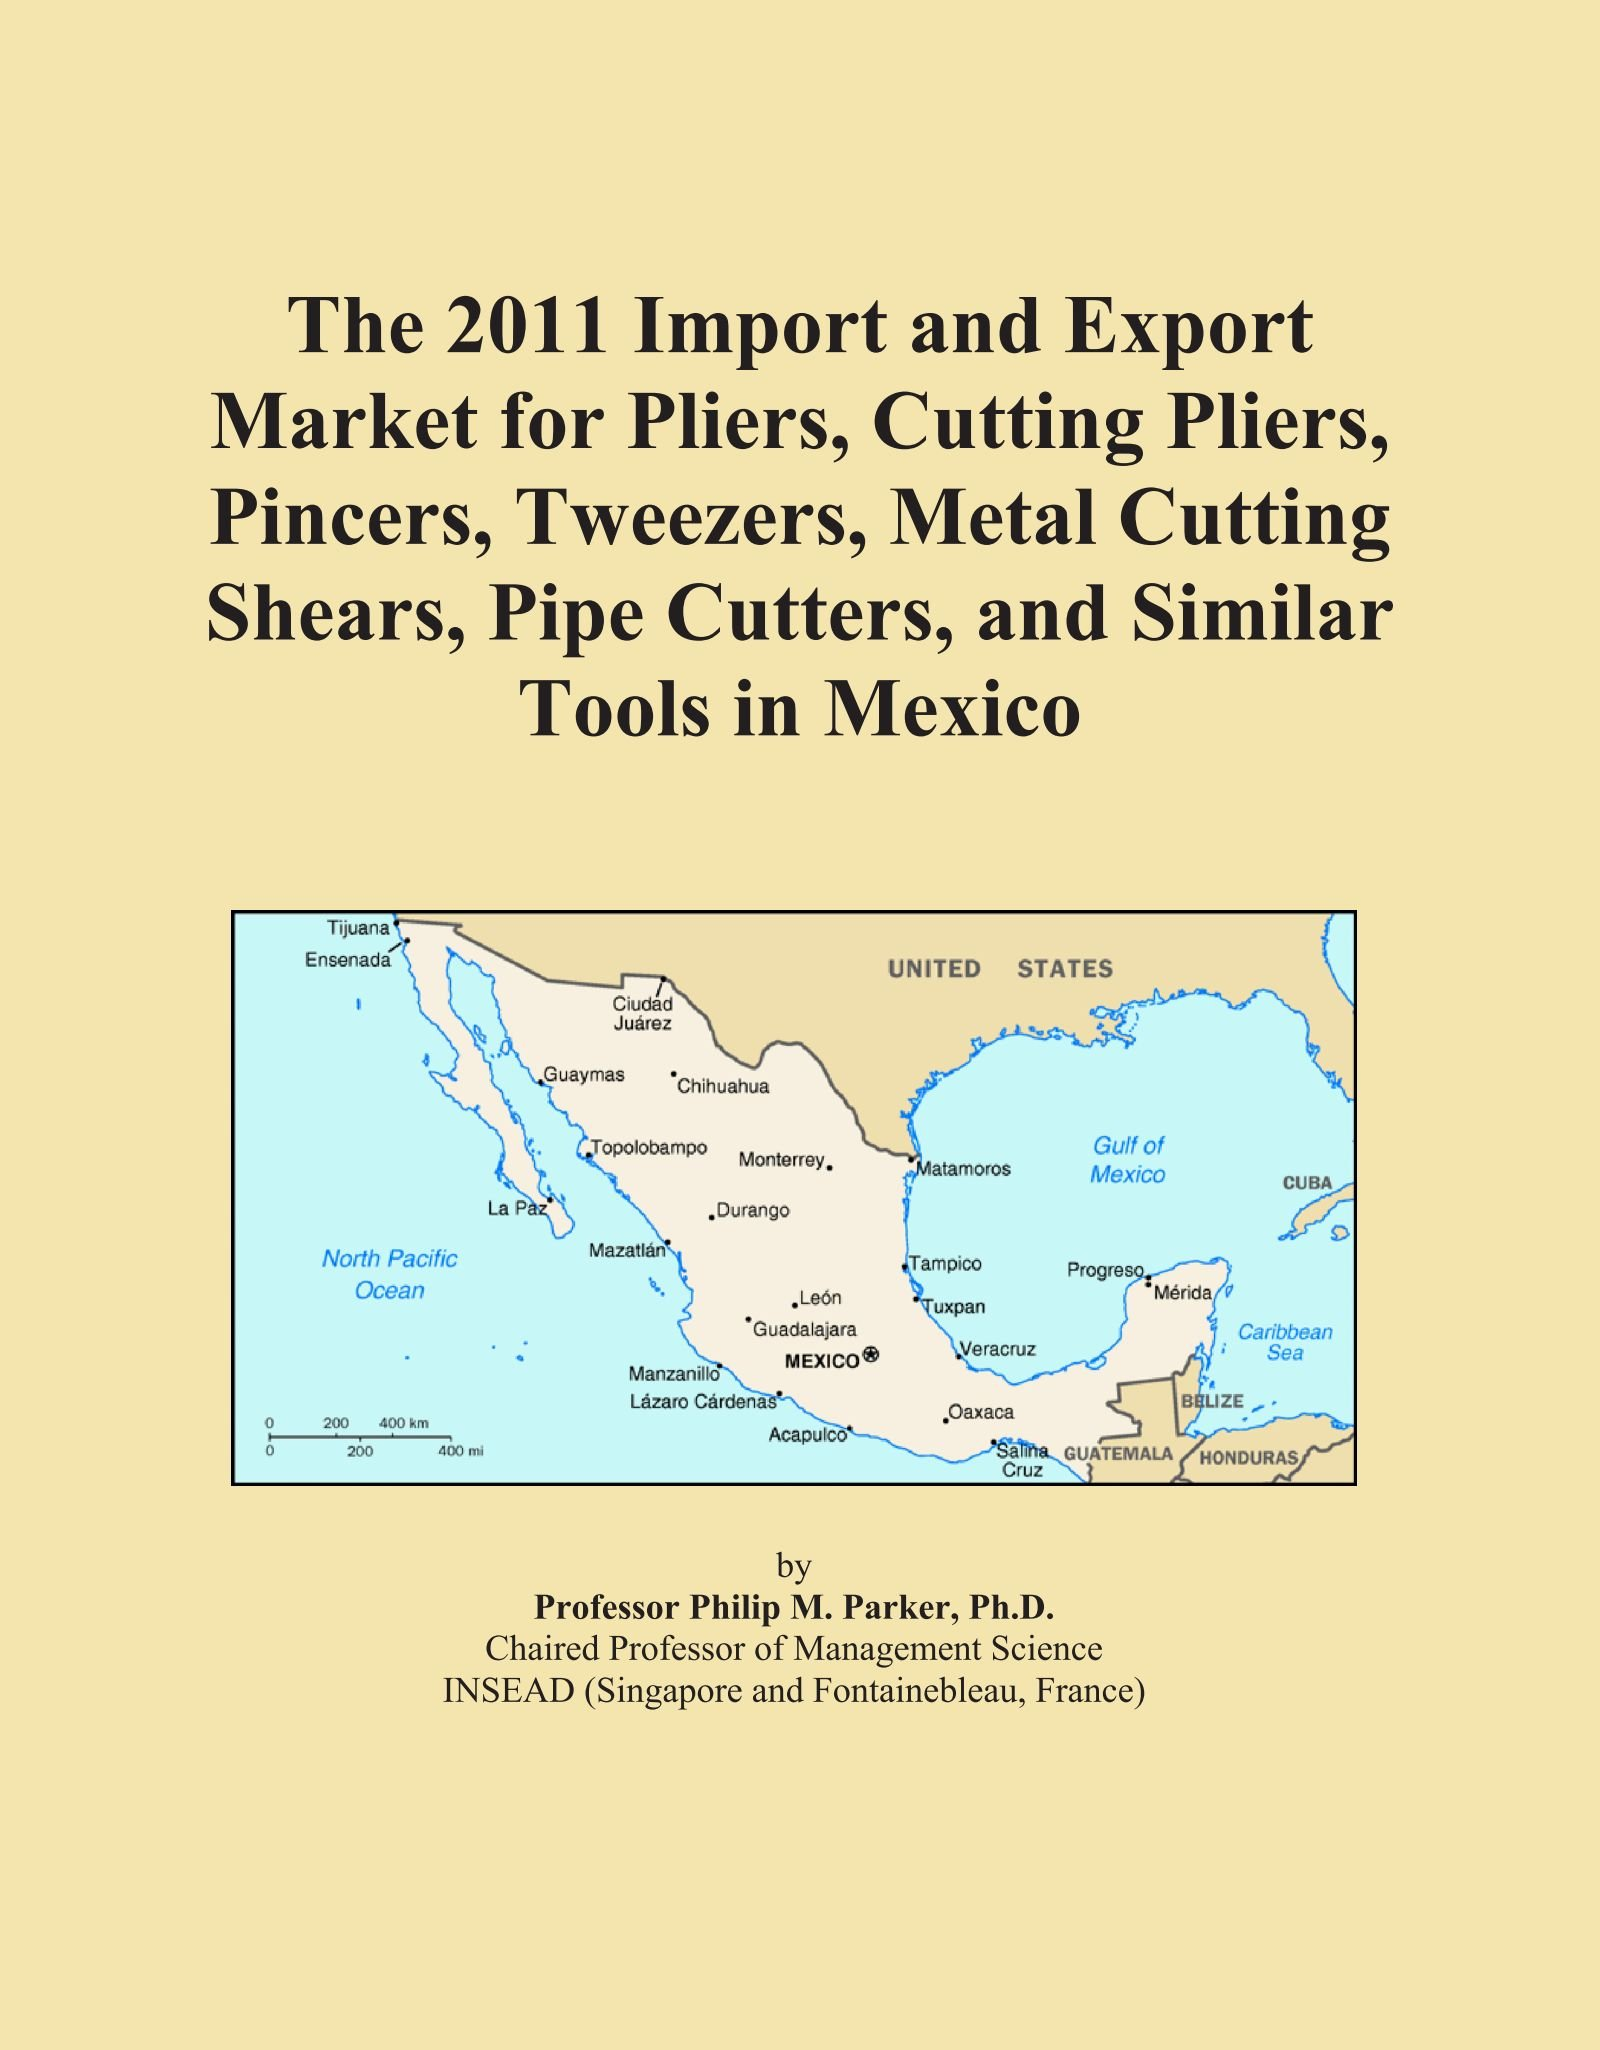 The 2011 Import and Export Market for Pliers, Cutting Pliers, Pincers, Tweezers, Metal Cutting Shears, Pipe Cutters, and Similar Tools in Mexico ebook